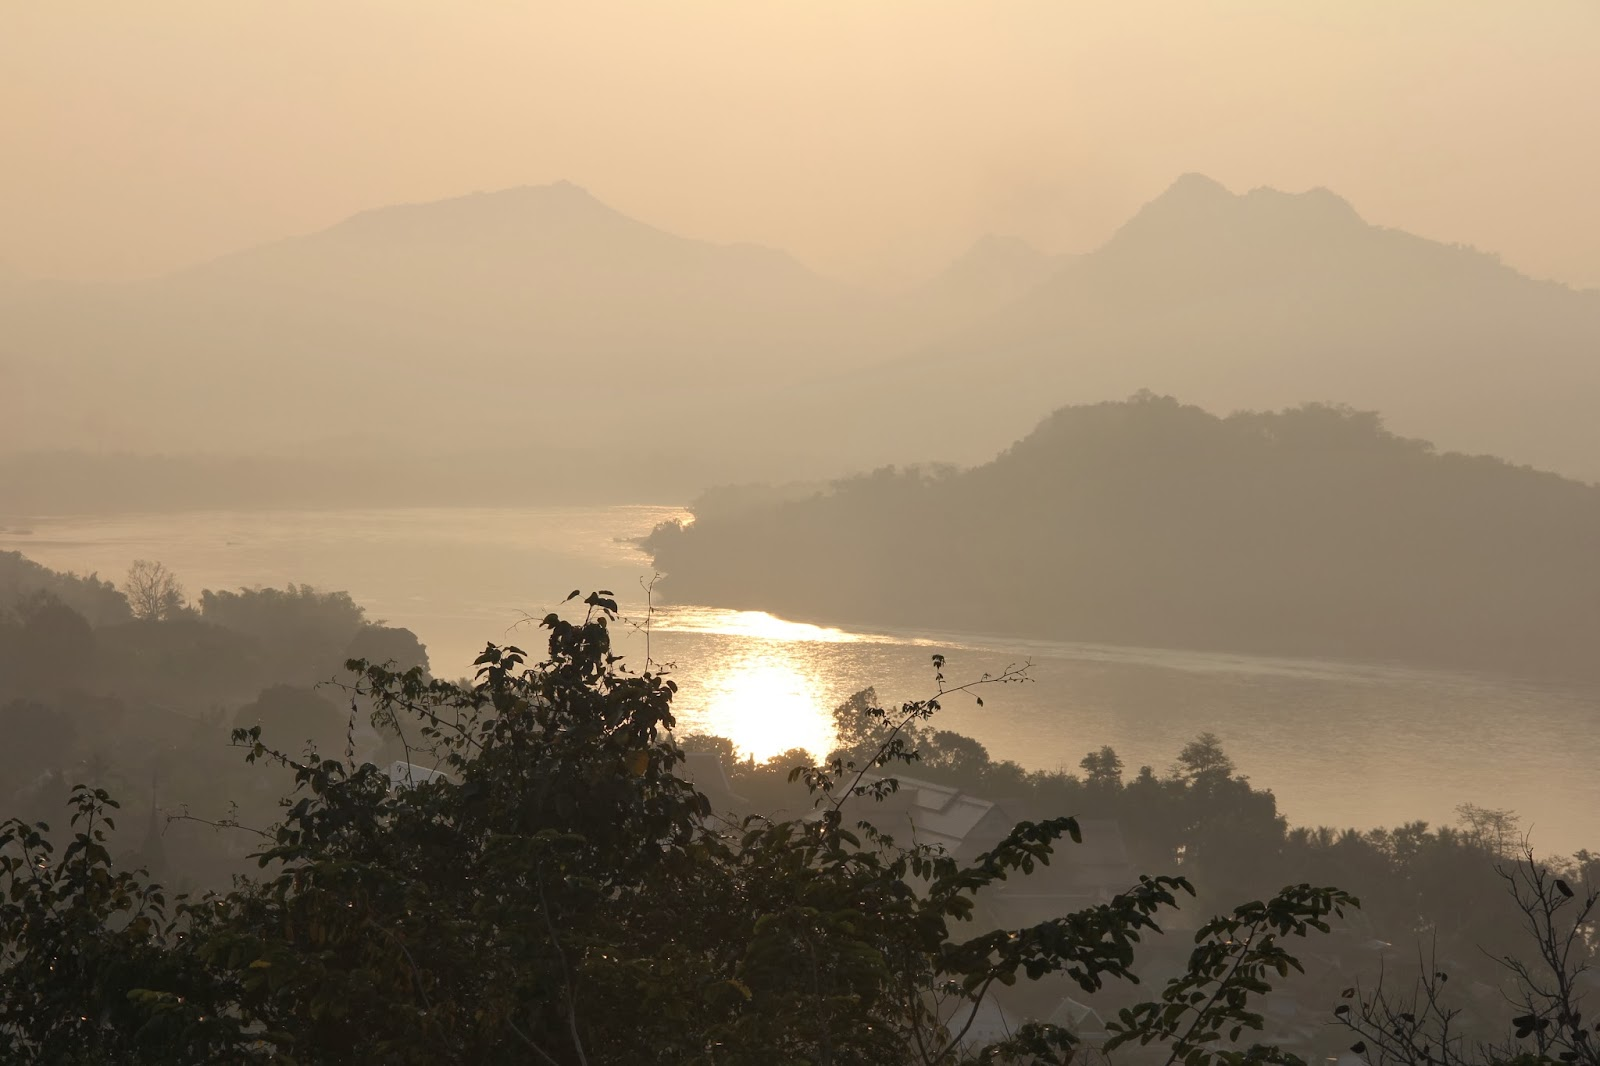 Spectacular Sunset over the Mekong River from Phousi Hill in Luang Prabang.